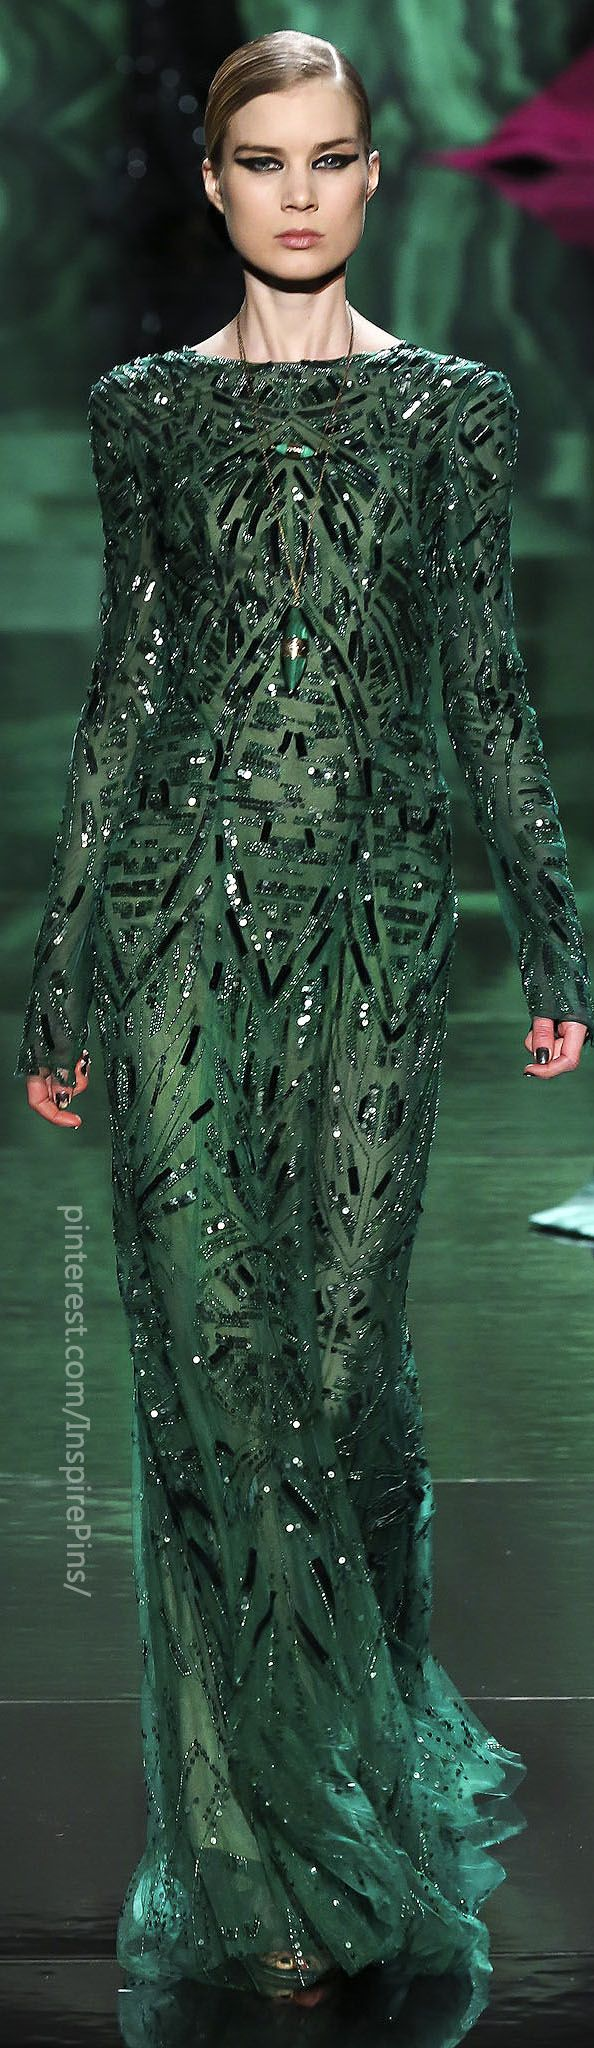 Fall 2013 Ready-to-Wear Monique Lhuillier